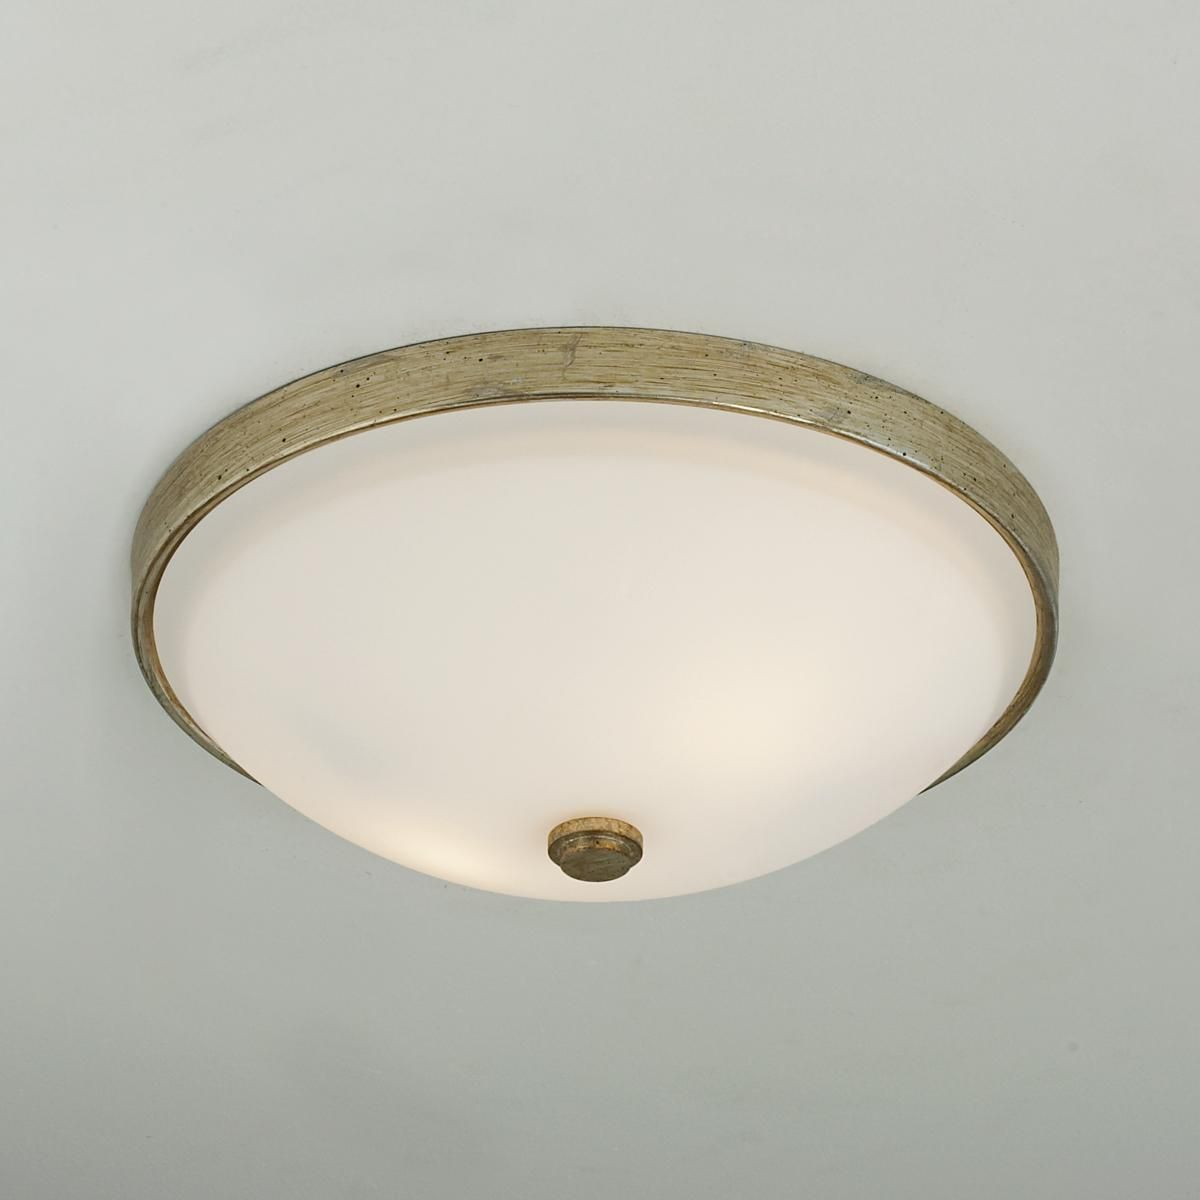 a12be7bca6aa Minka Lavery 4177-84 3 Light Semi-Flush Ceiling Fixture from the Harbour  Point C